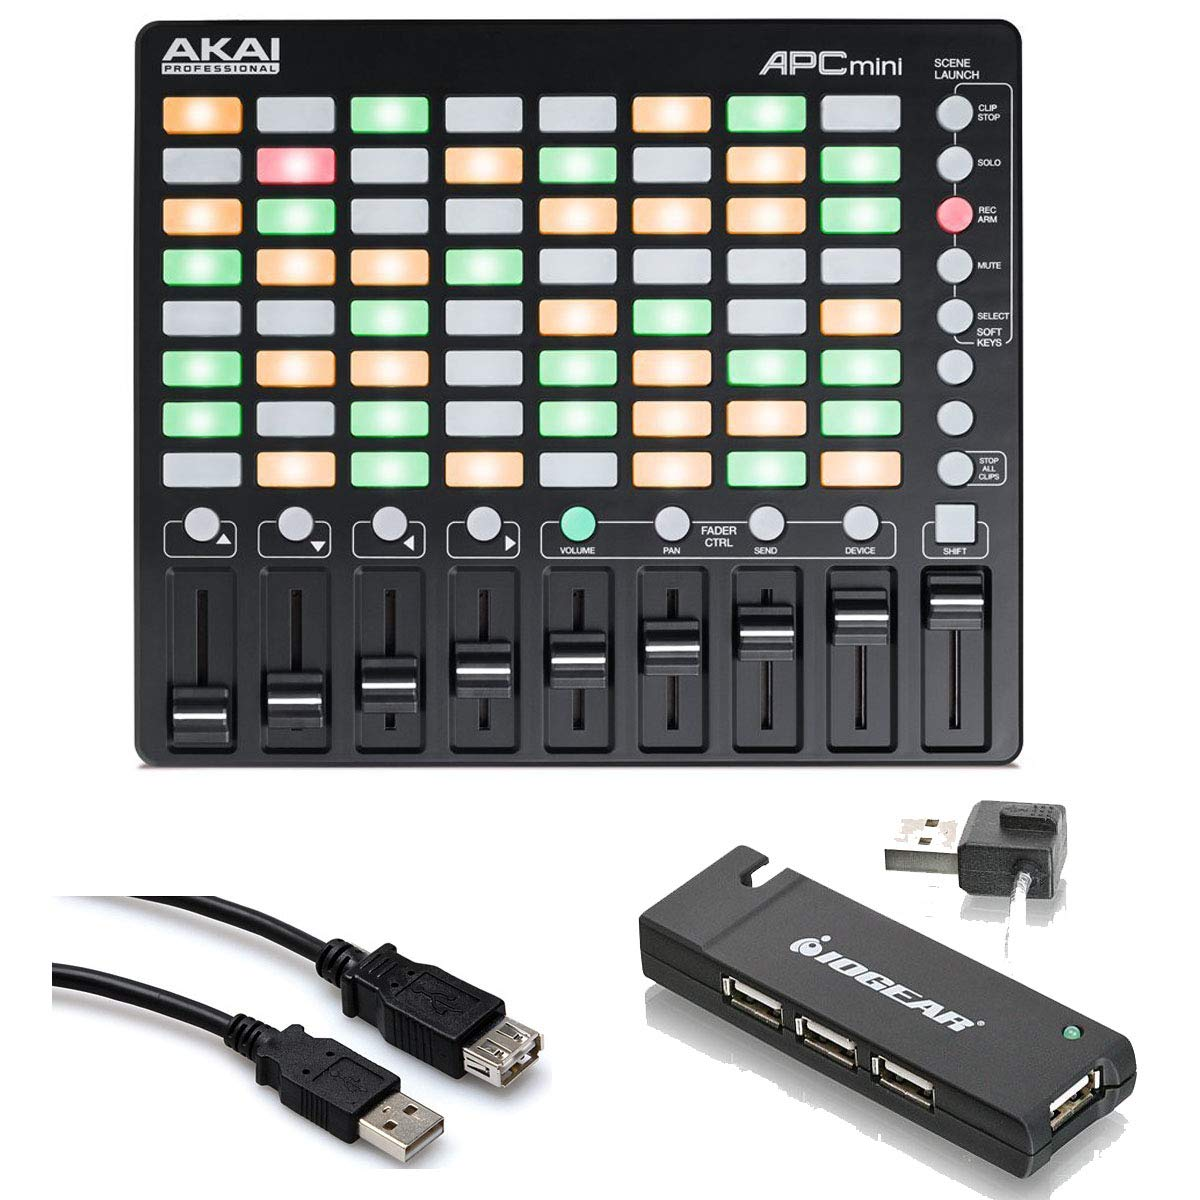 Akai Professional APC mini - Compact Ableton Performance Live Controller with 4-Port USB 2.0 Hub + High Speed USB Extension Cable by Akai